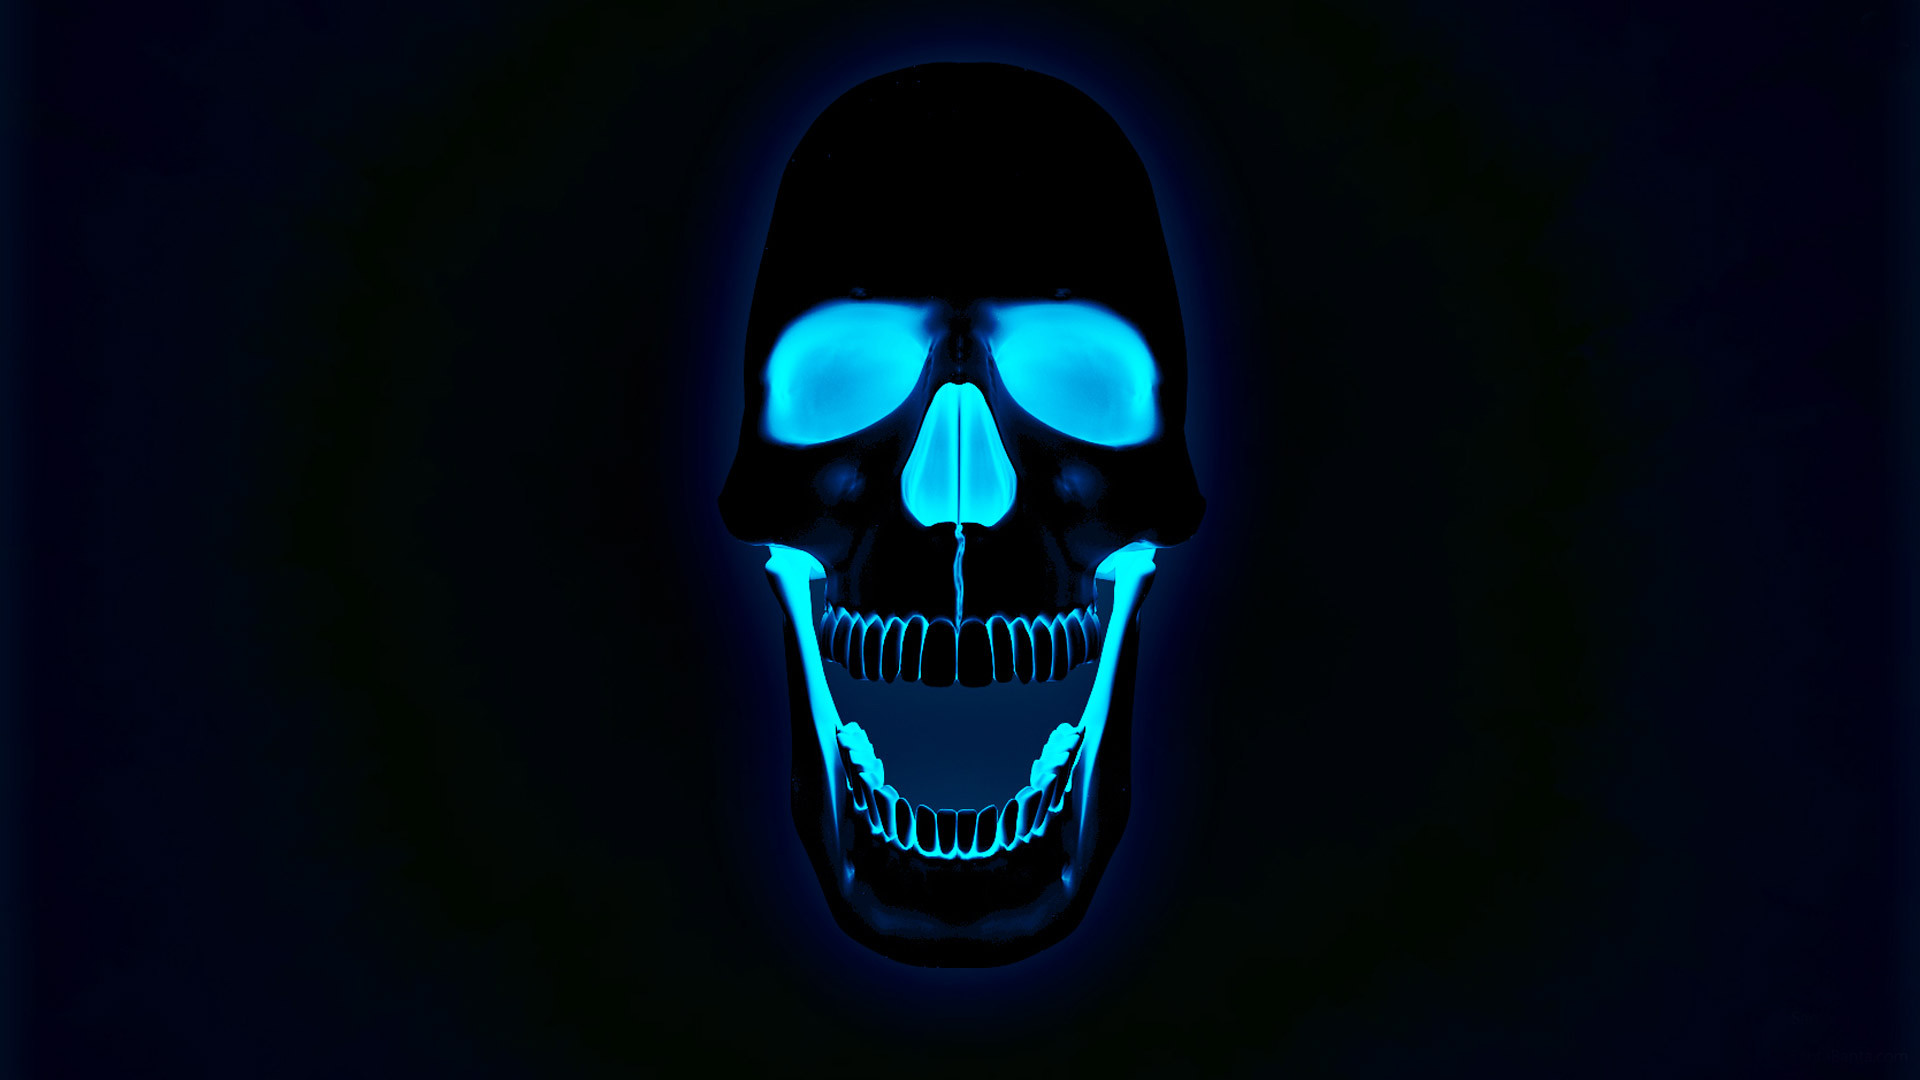 1920x1080 Glowing neon skull wallpaper